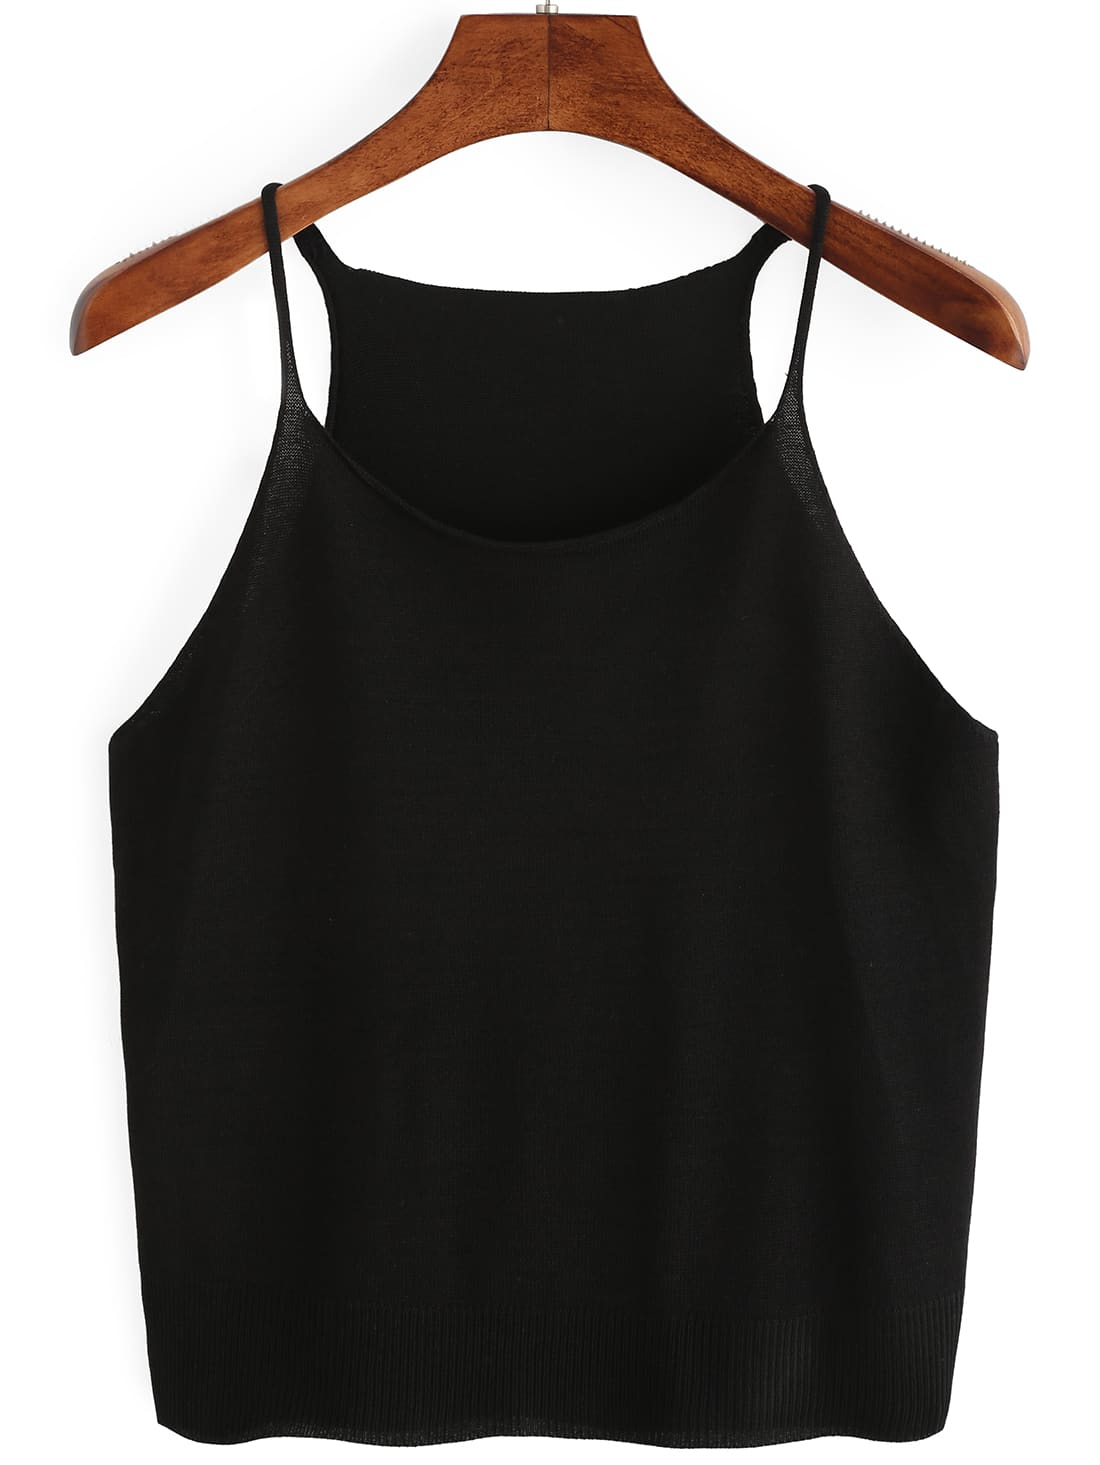 Black Knitted Cami Top RVES160420002